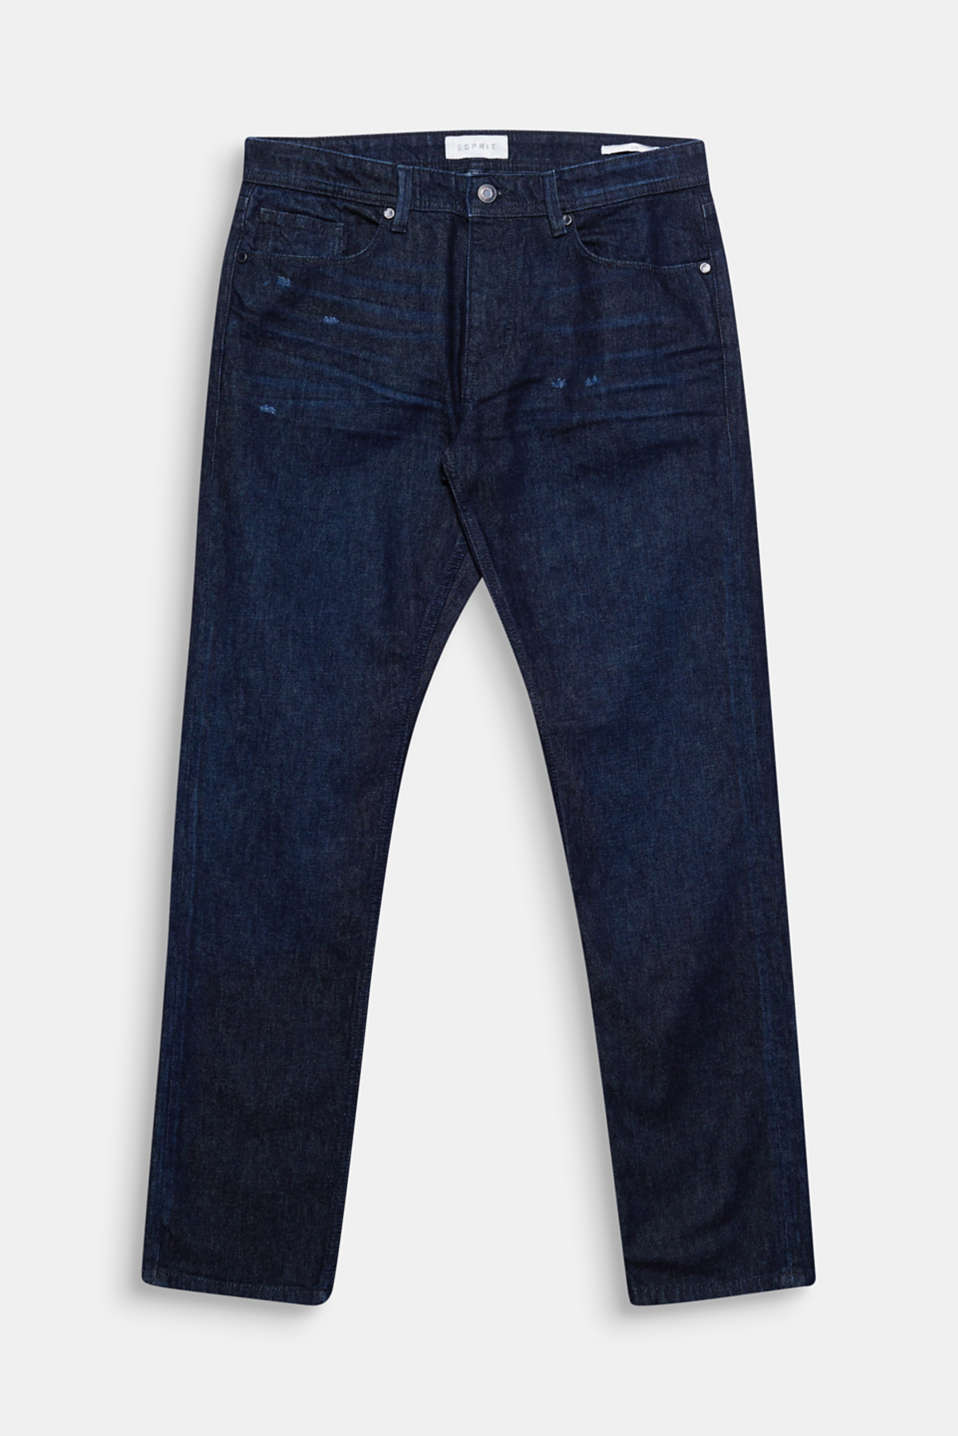 We love denim! These melange jeans wow with slight vintage effects.